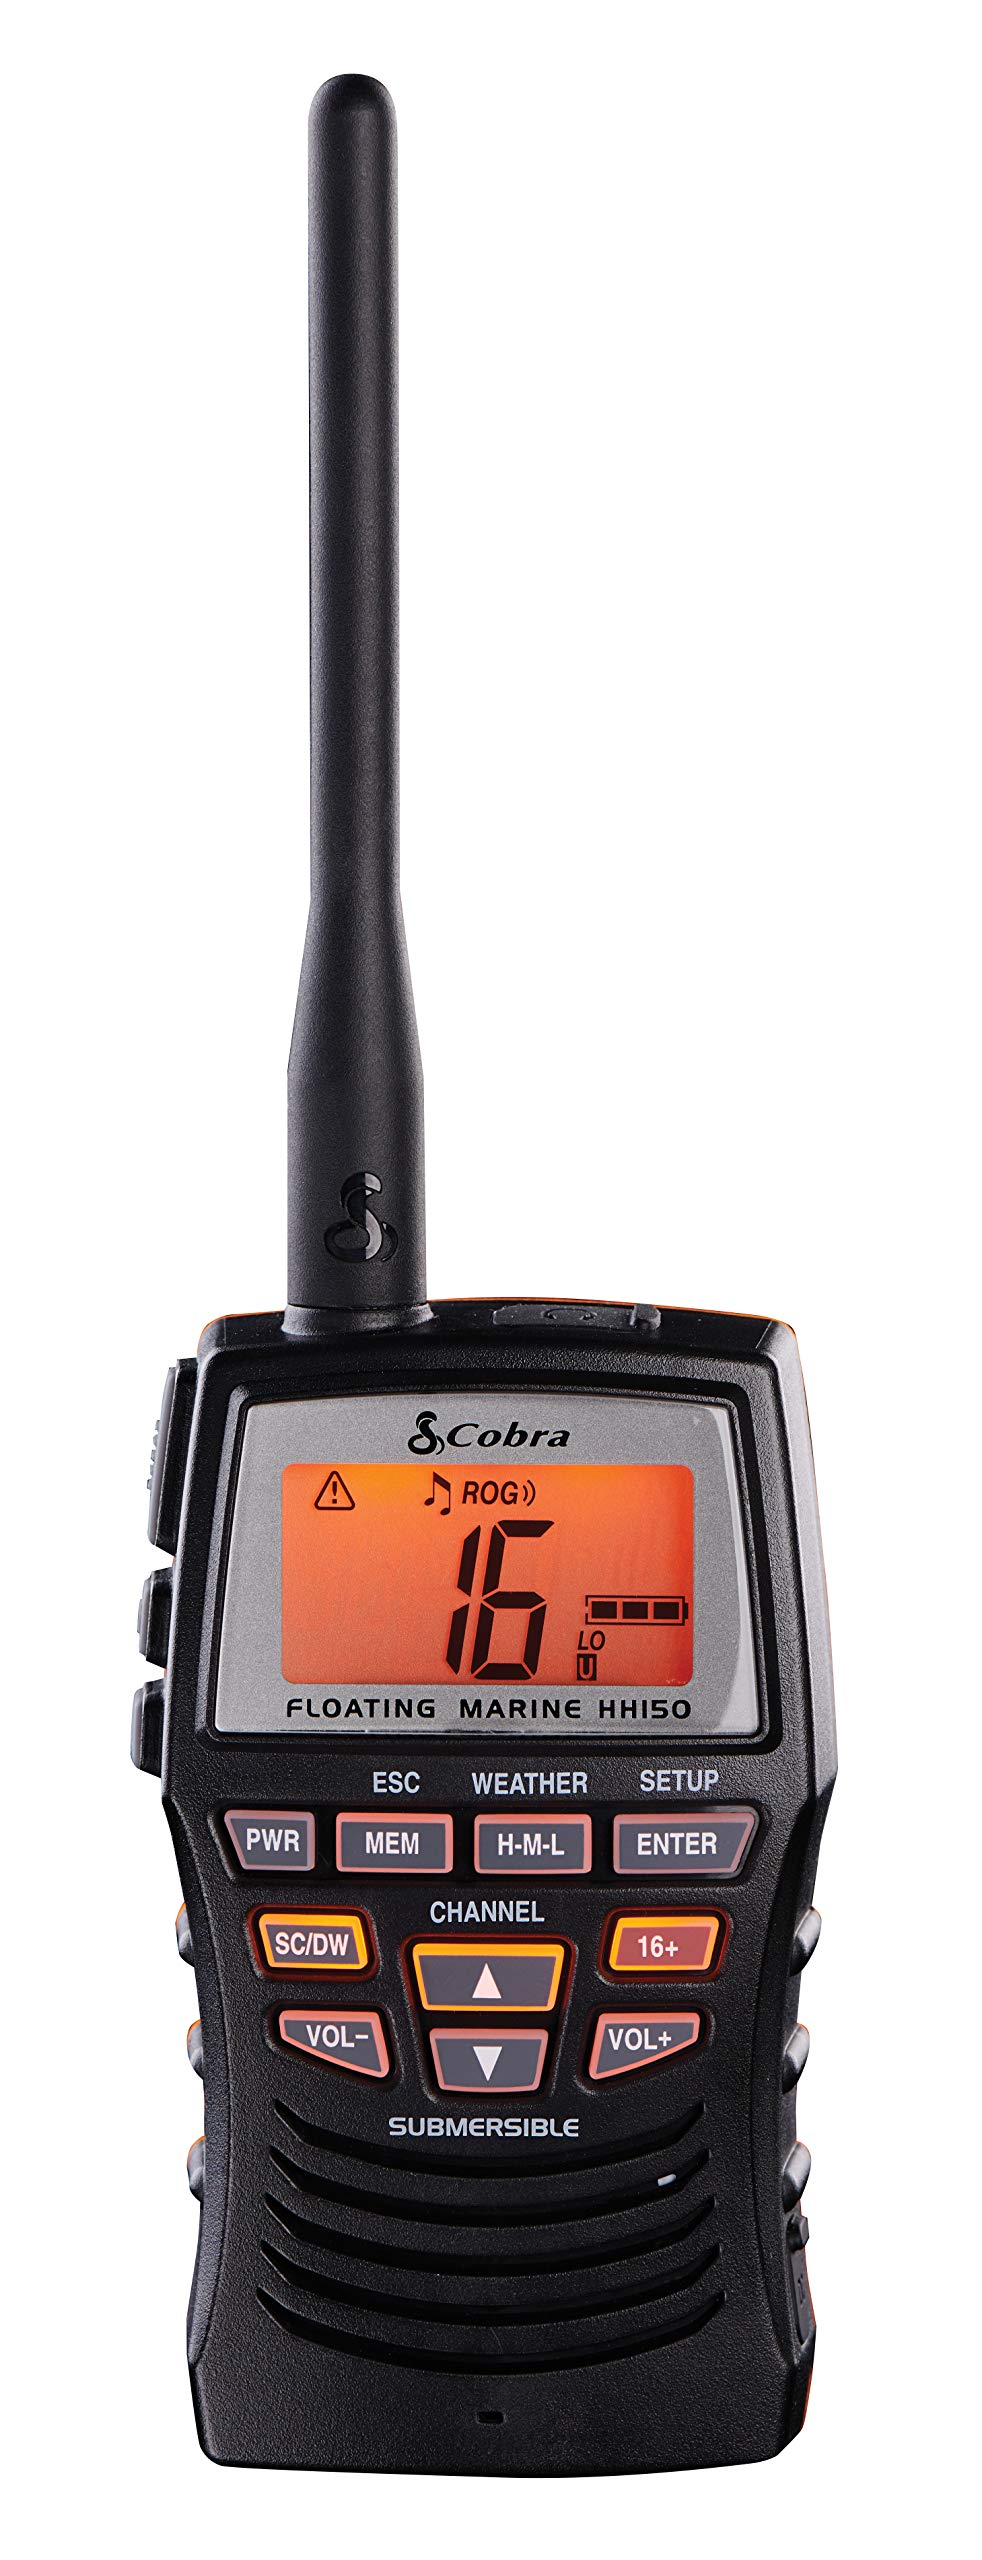 Cobra Marine Radio - MR HH150 FLT - 3 Watt, Floating, Long Range, Handheld, VHF Radio, NOAA, International, Waterproof, Submersible, Weather Alerts, LCD Screen, Belt Clip by Cobra